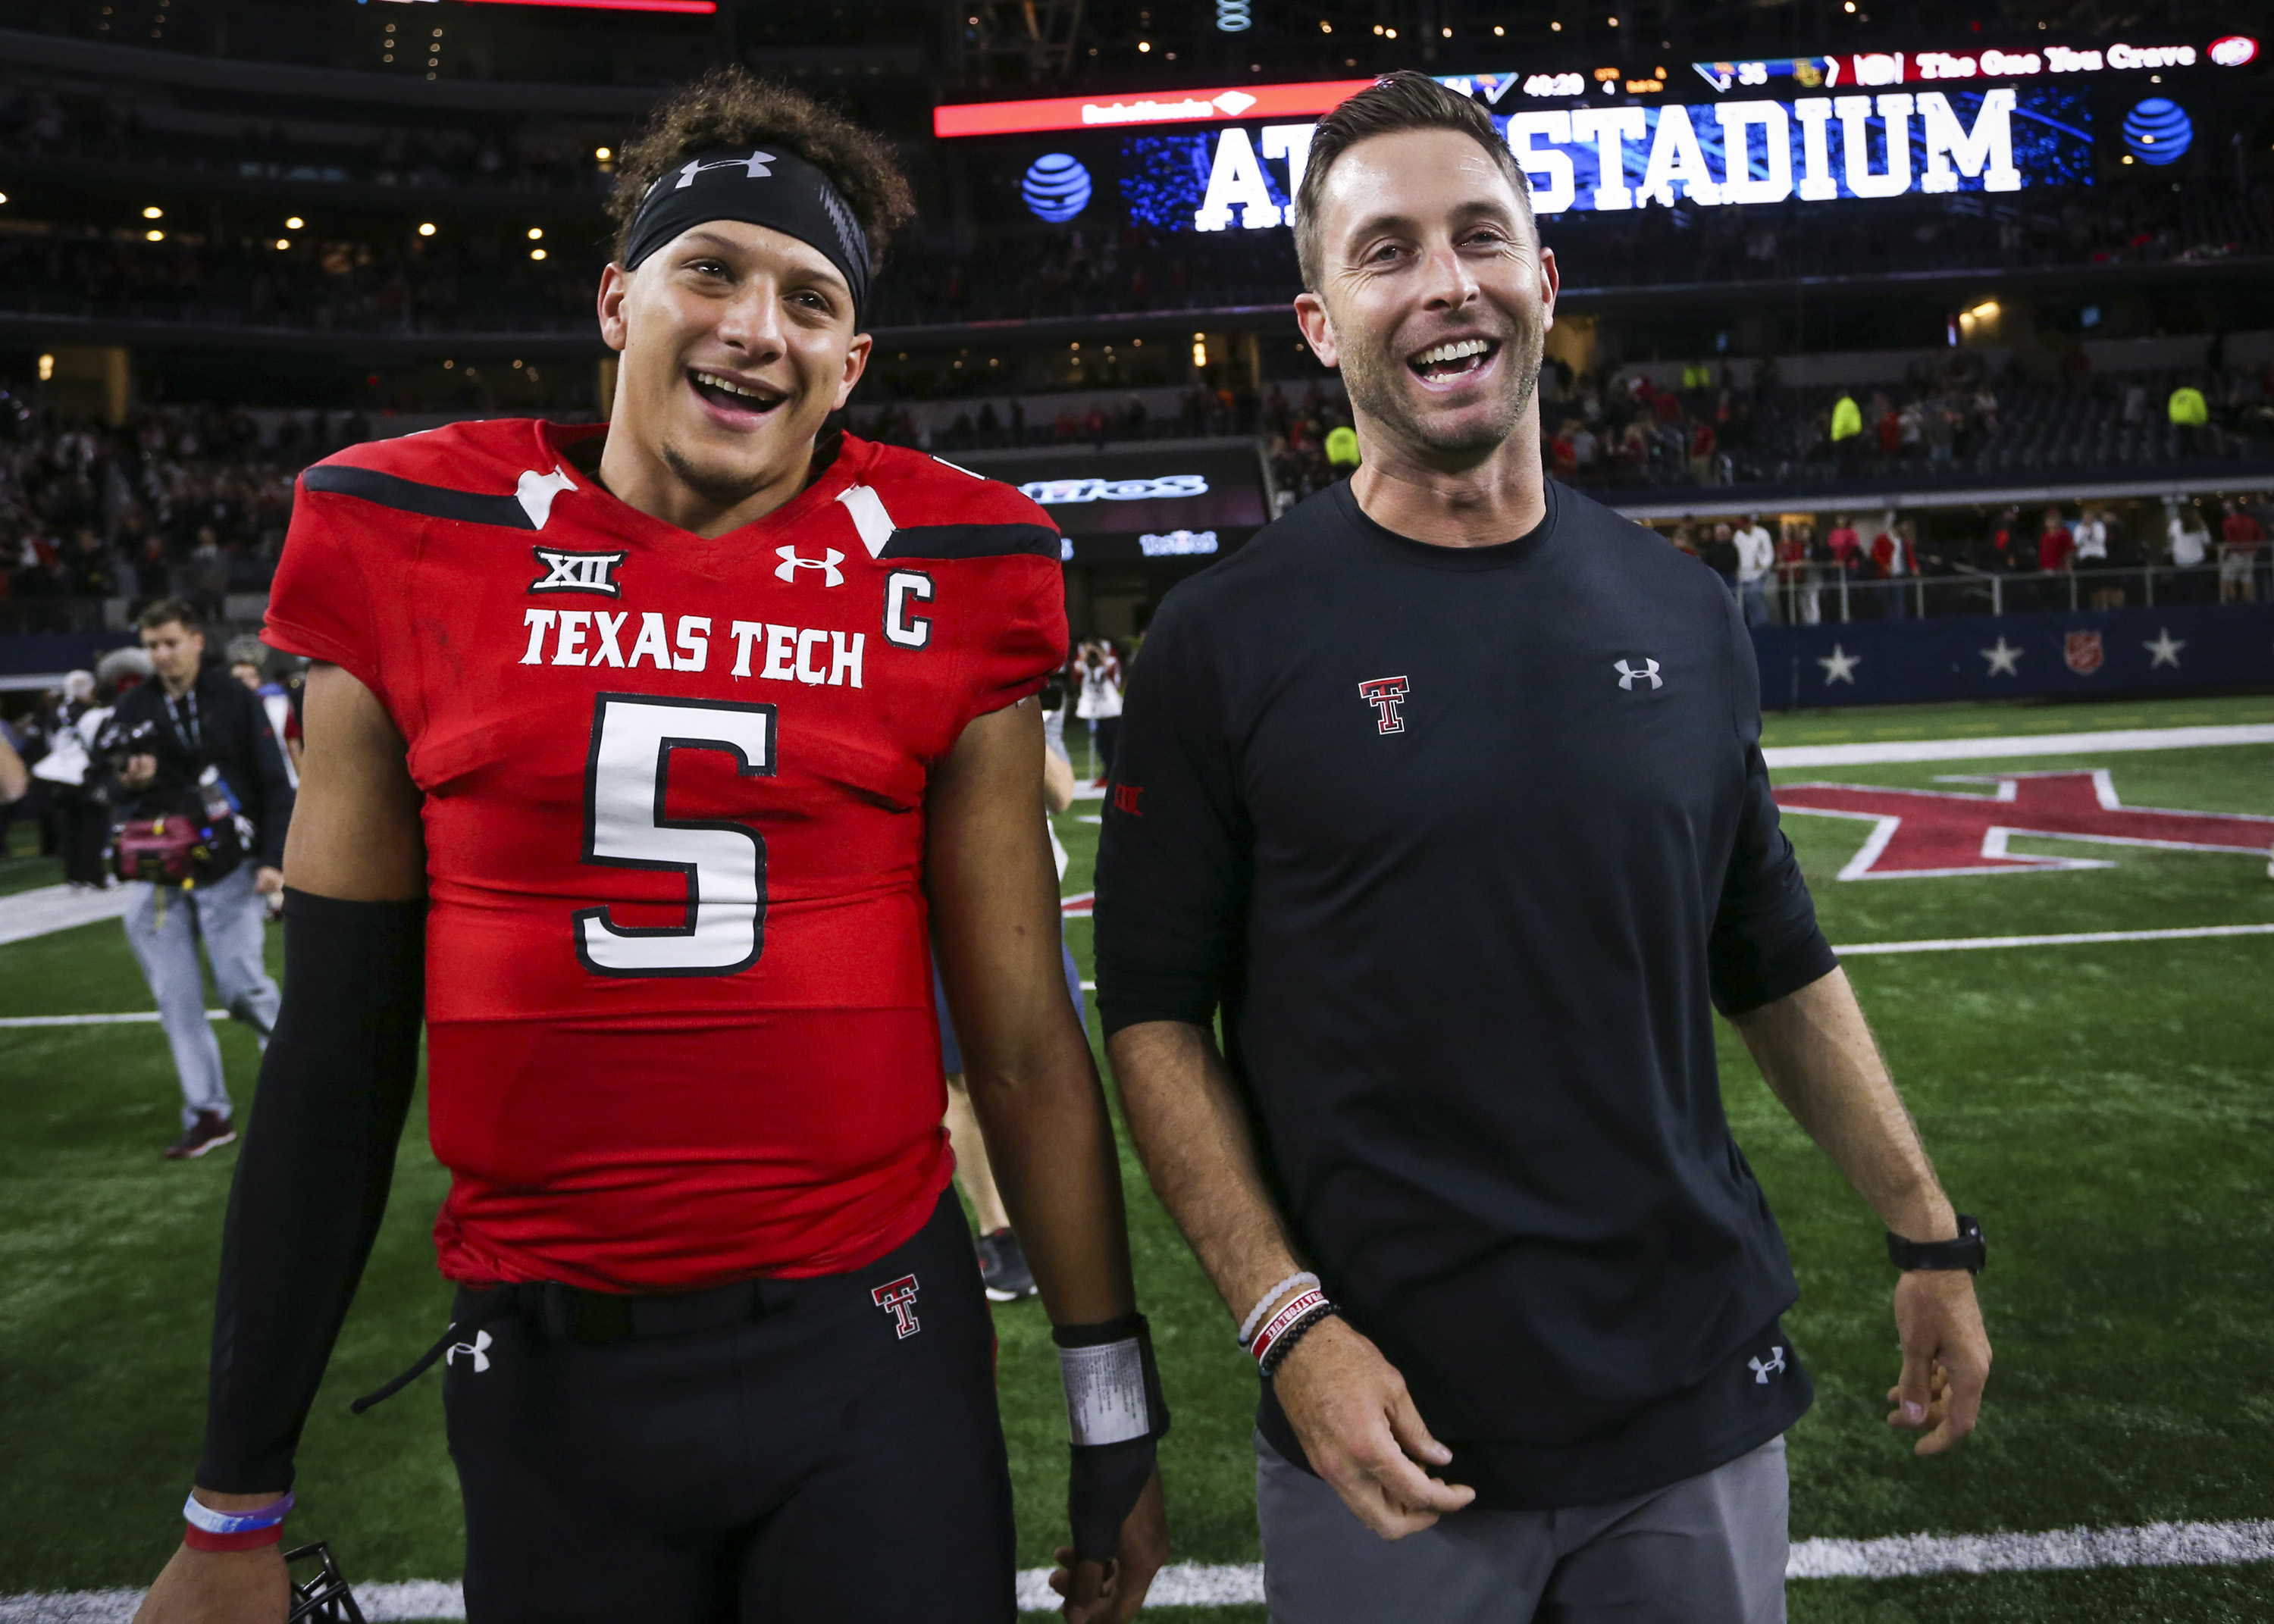 Hot prospect Kingsbury brings small-town history, big offensive resume and movie star looks to USC